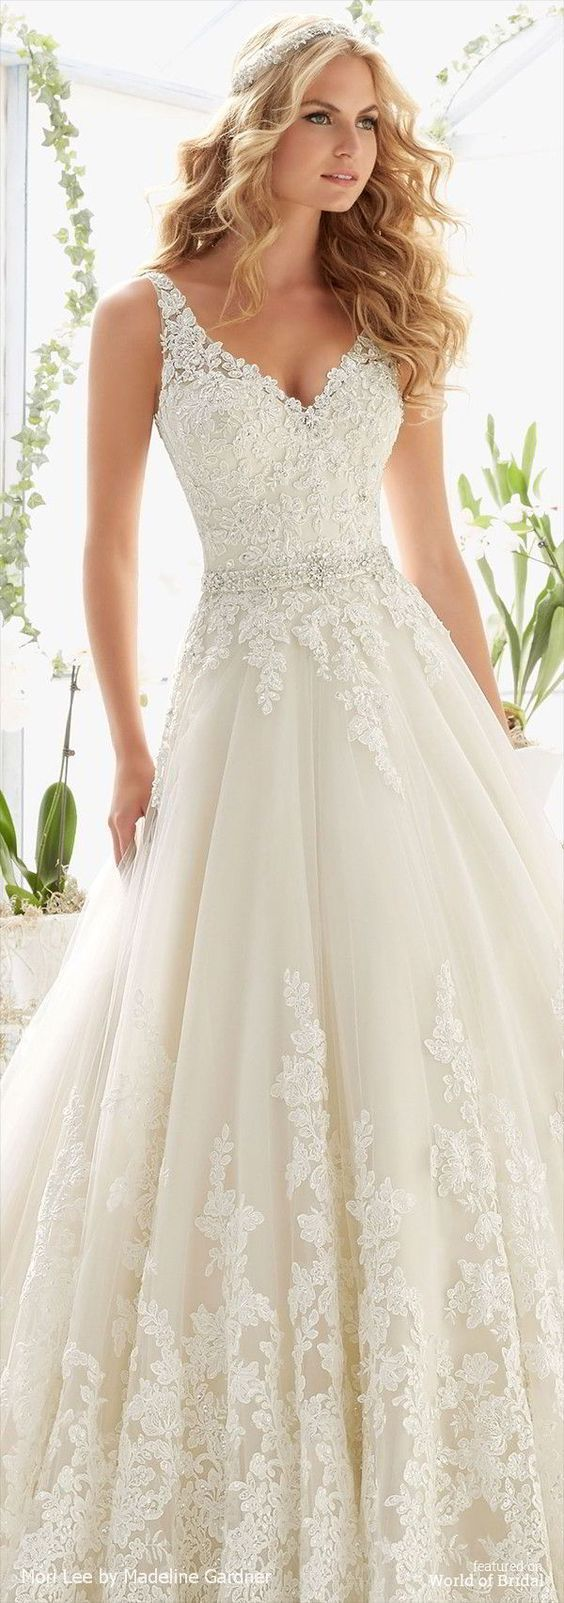 Best wedding dresses for broad shoulders  To be honest looking at this makes me wonder if I really want a